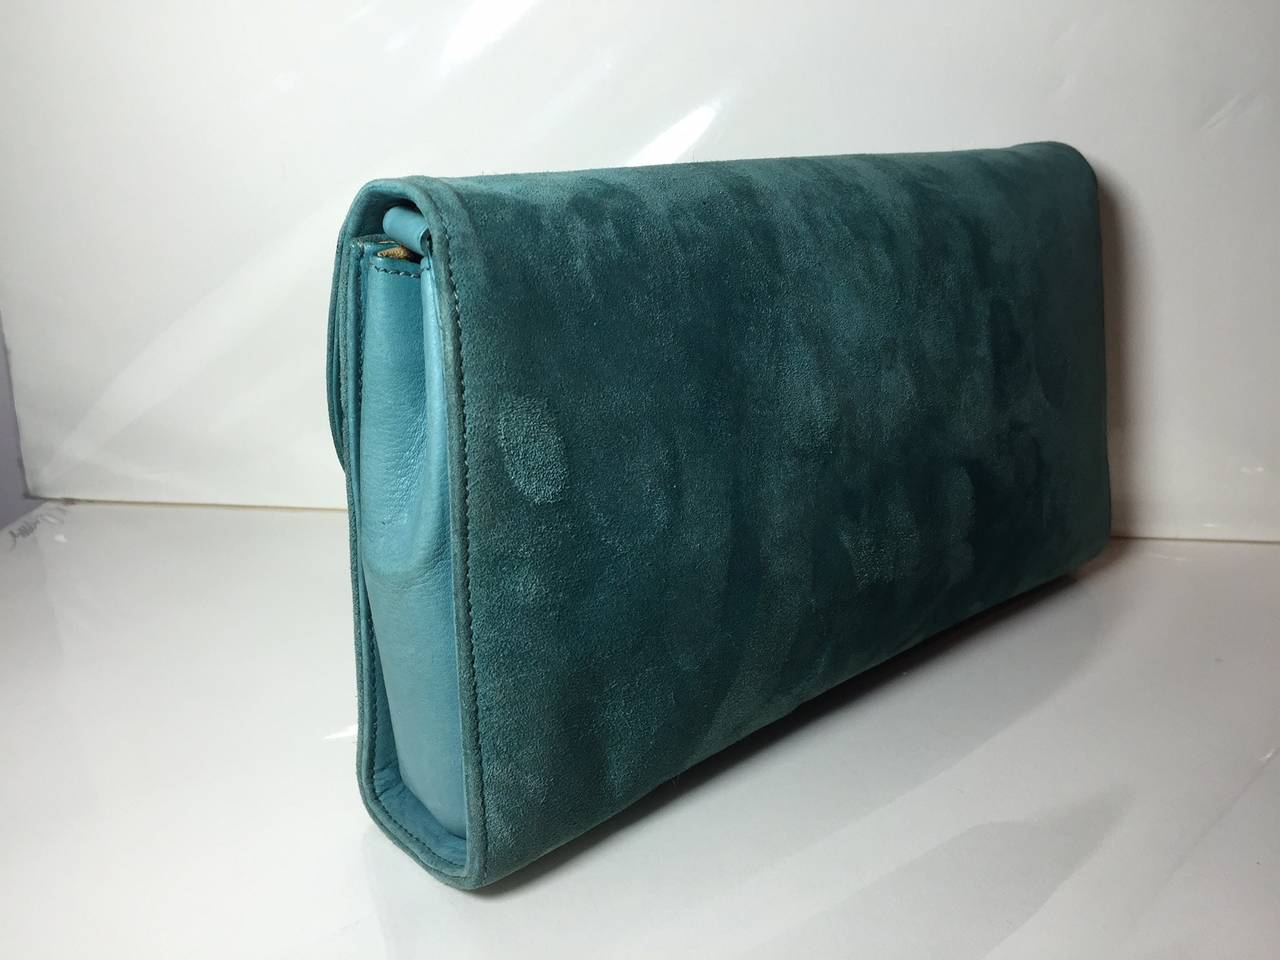 1970s Gucci Turquoise Suede Clutch / Shoulder Bag with Enameled Closure 5